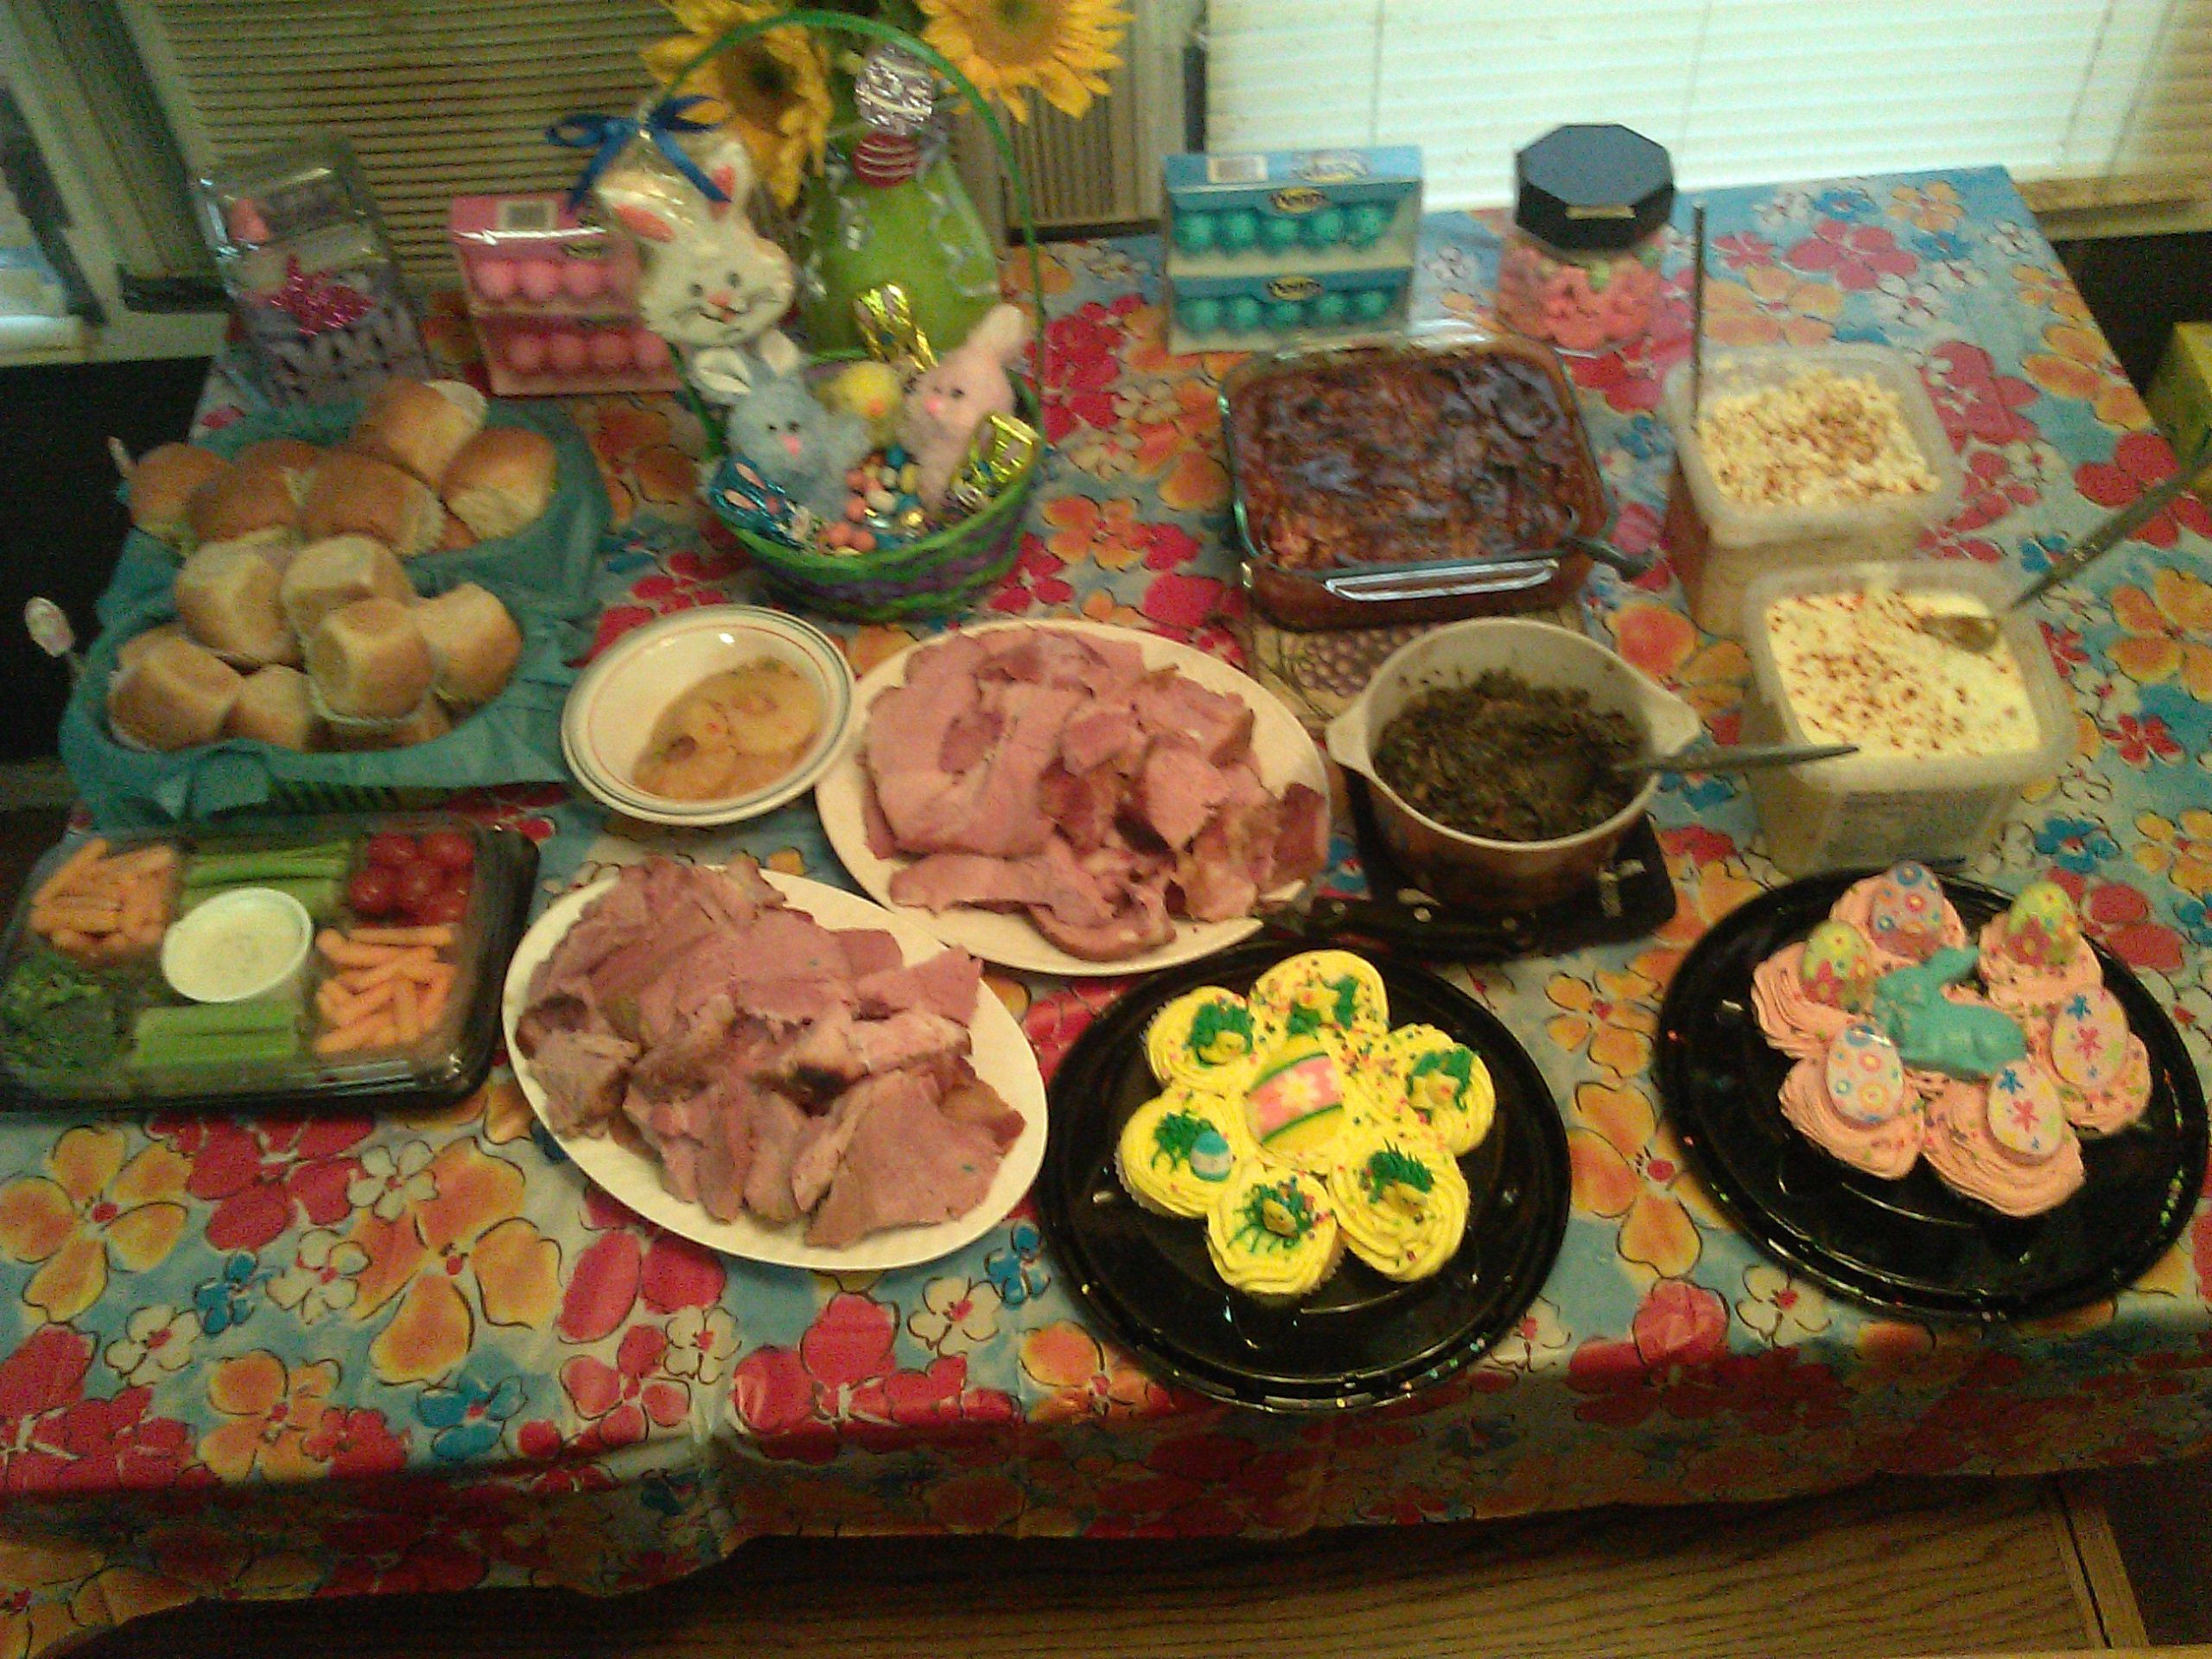 Easter Dinner Ideas Pinterest  Easter Dinner Southern Style Holiday ideas